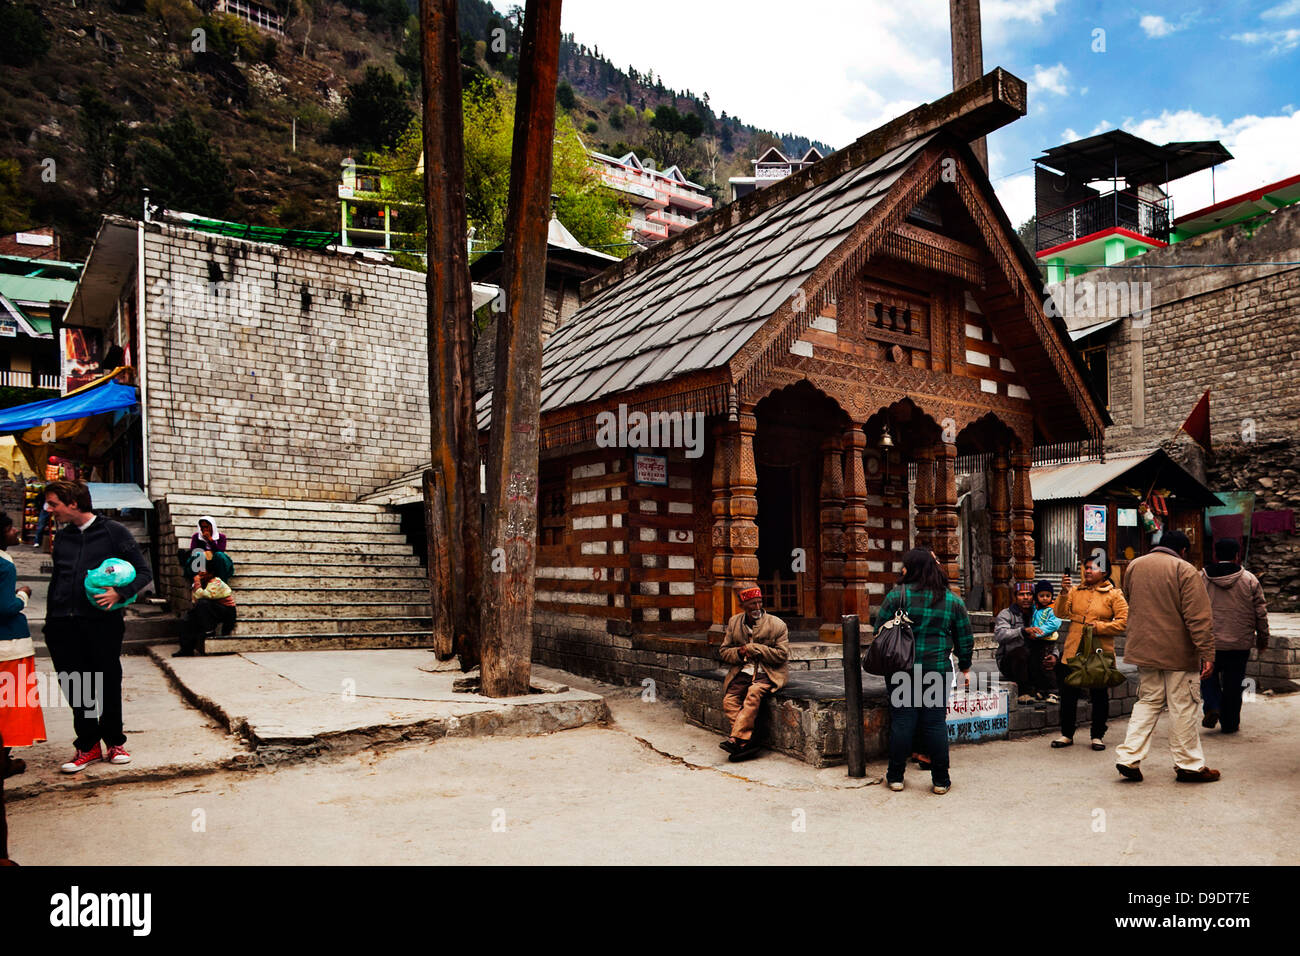 People on the street, Manali, Himachal Pradesh, India - Stock Image